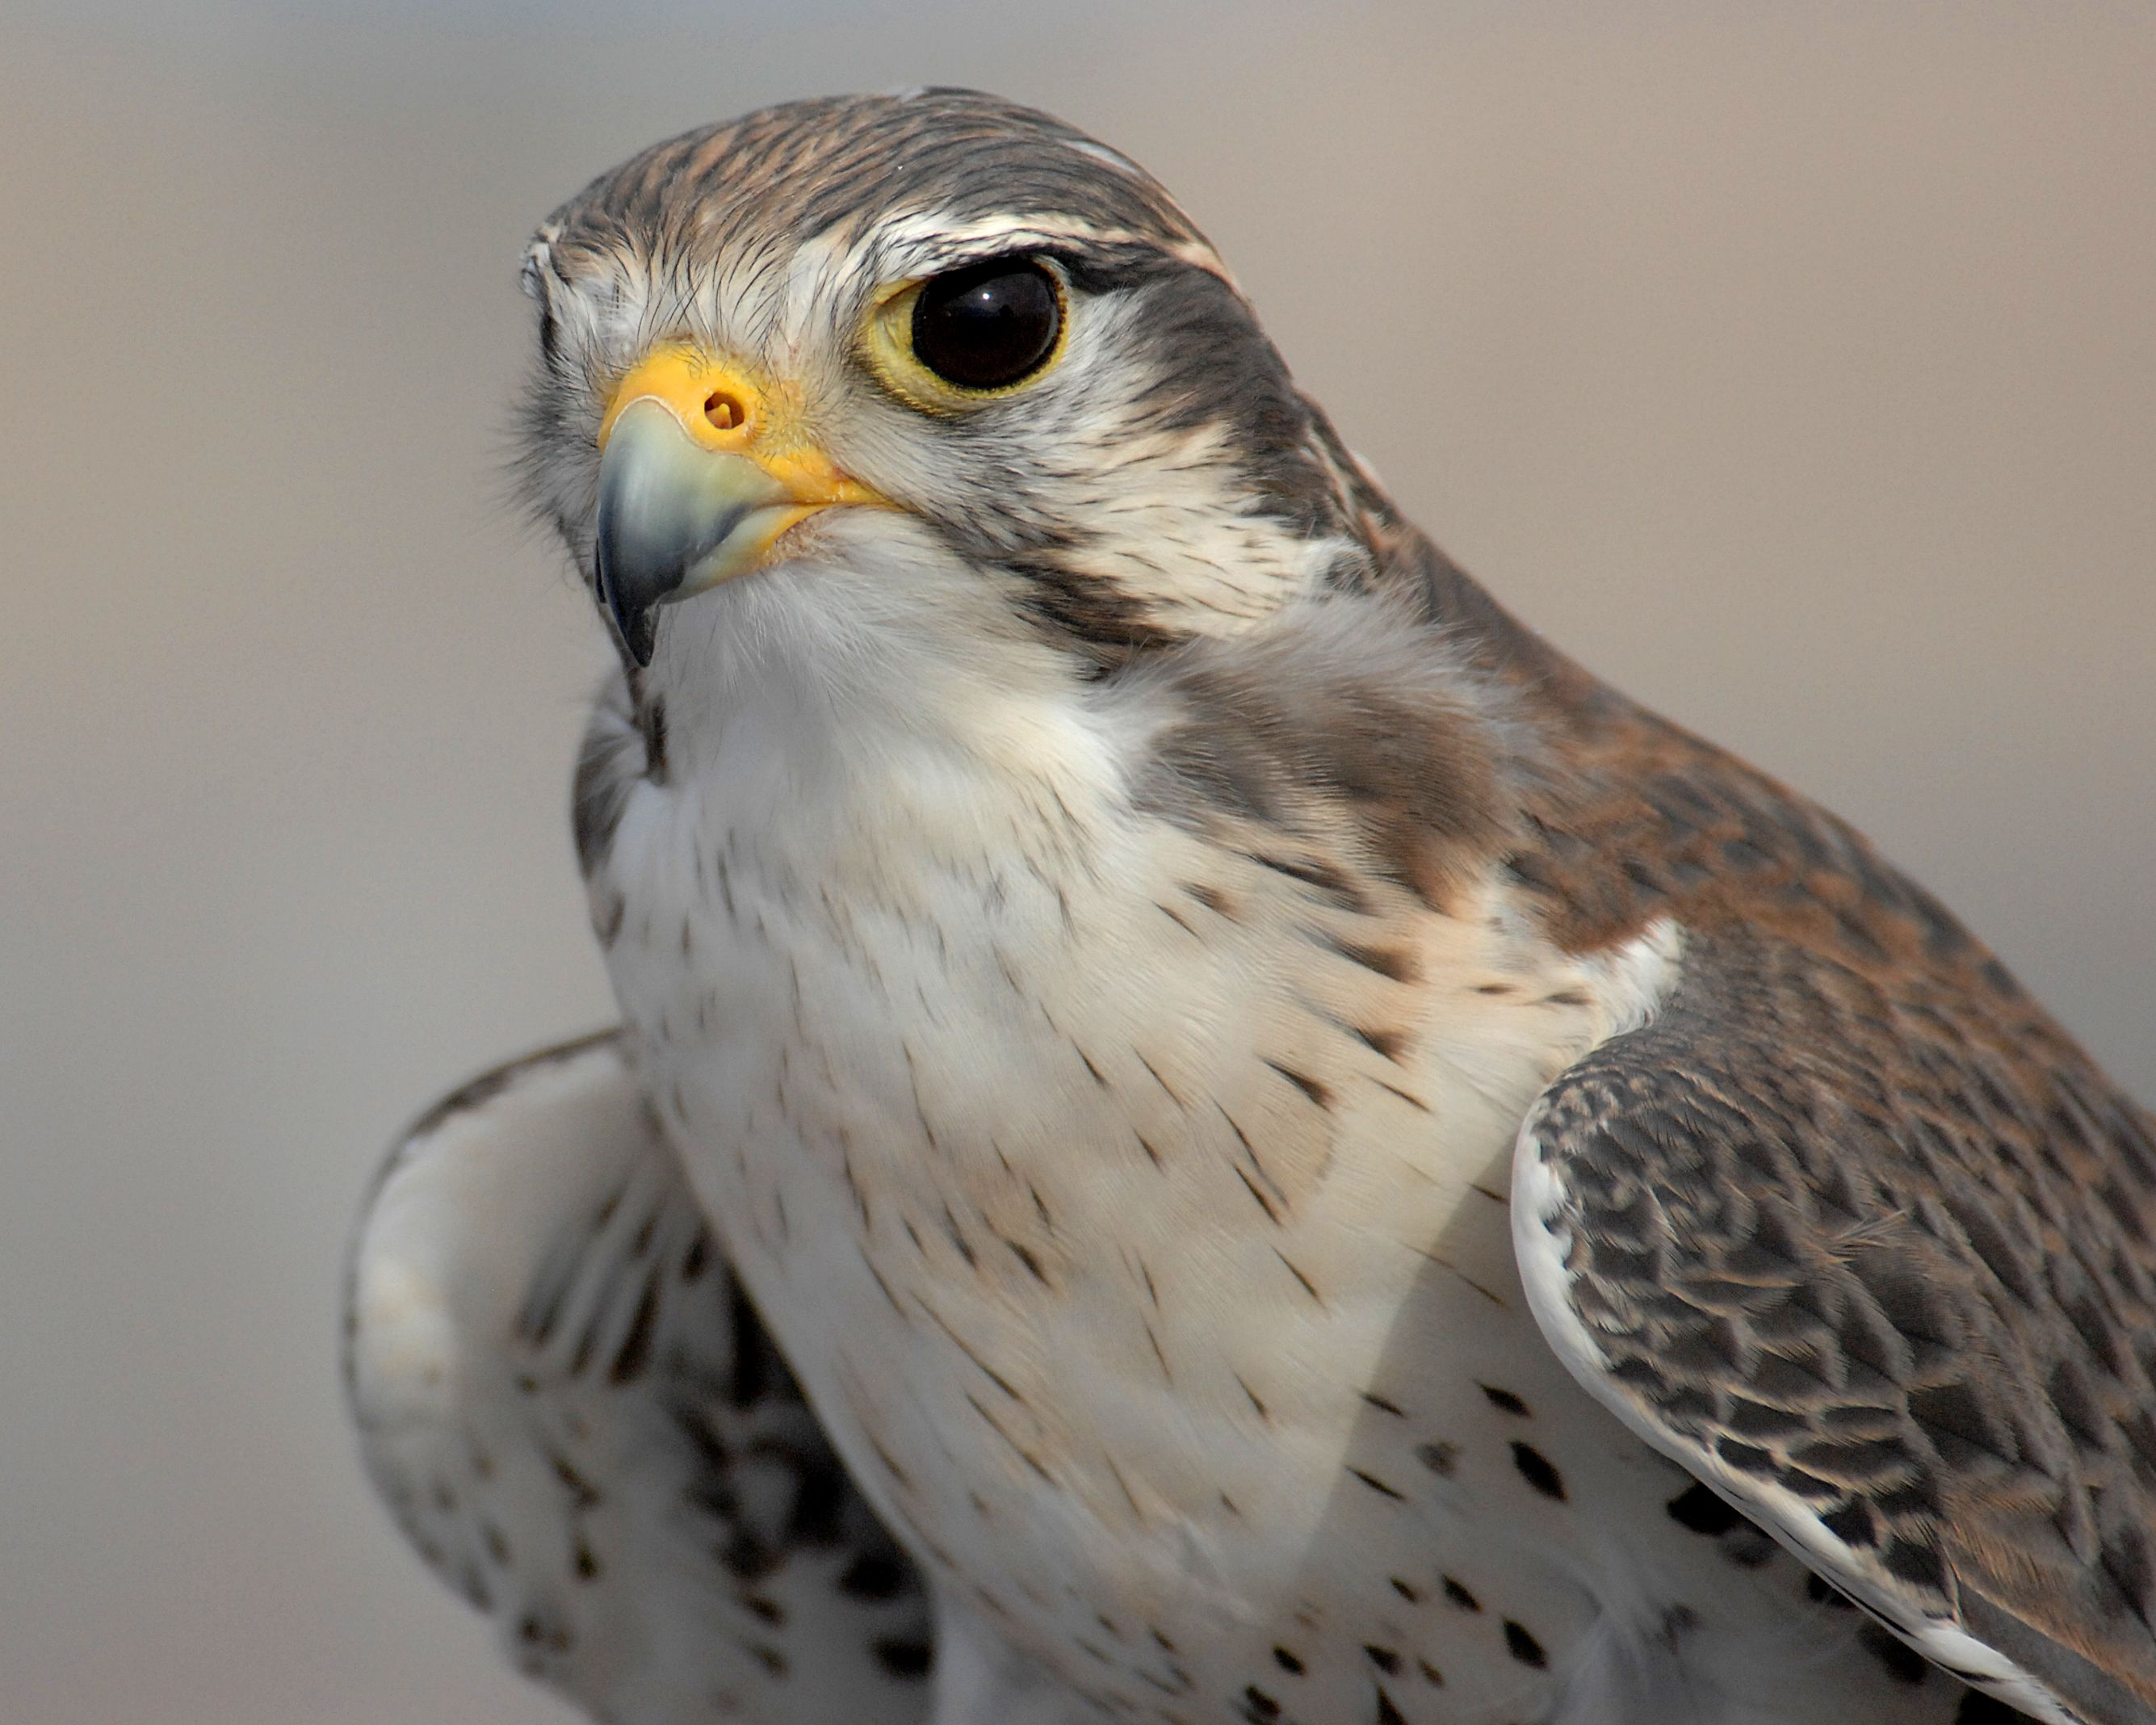 Pin By Brenda Donahue On Falcon Peregrine Falcon Air Force Academy Peregrine